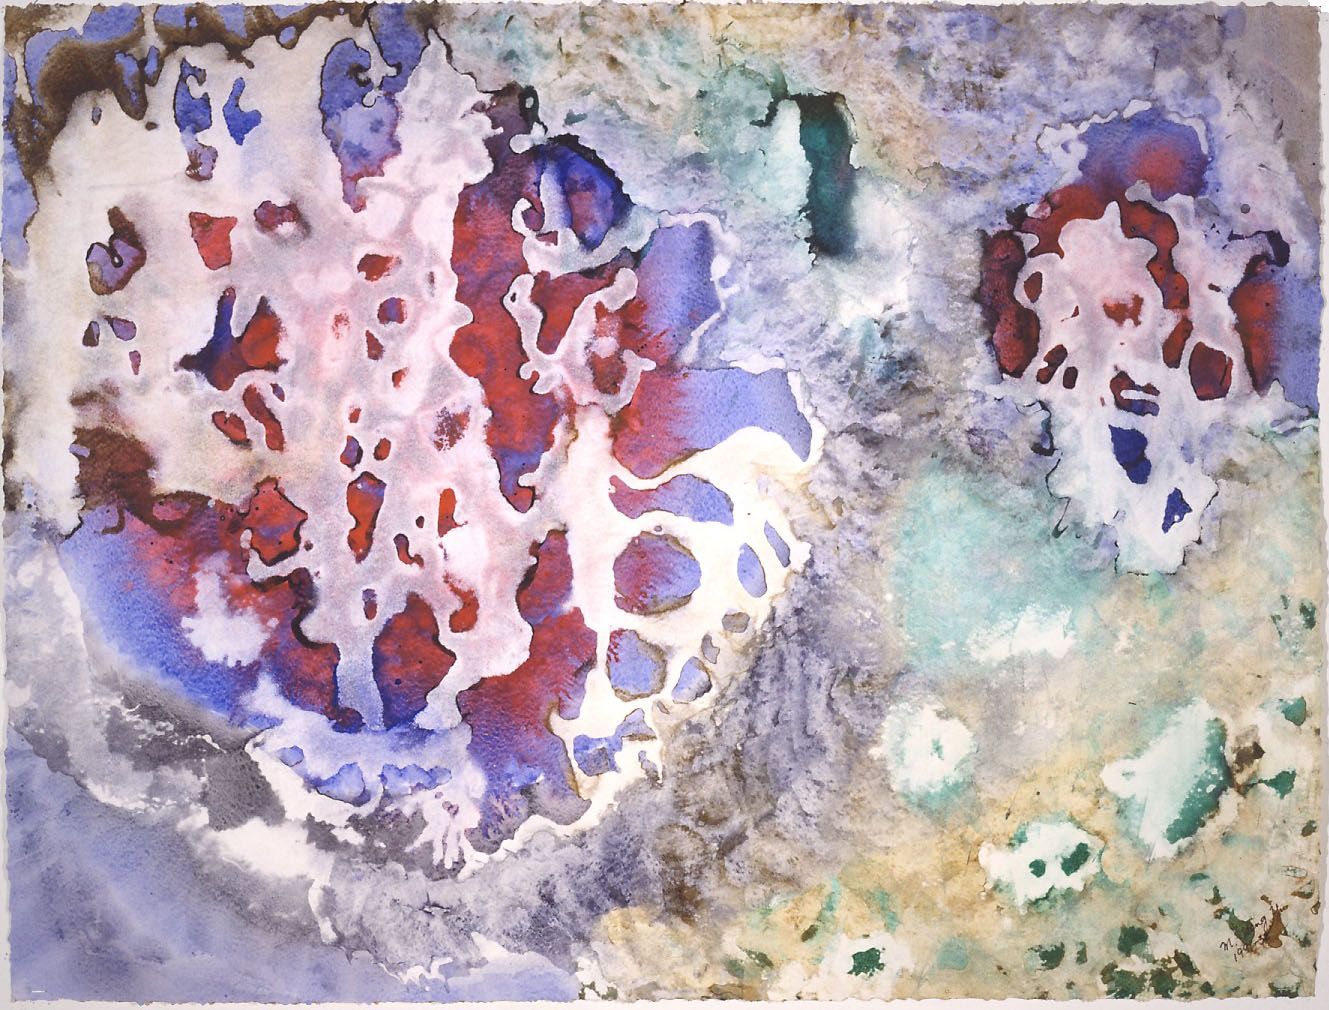 """""""Dancing Coral"""" 1991, Dancing Coral Series, acrylic on paper, 32 x 42 in (81 x 107 cm)."""